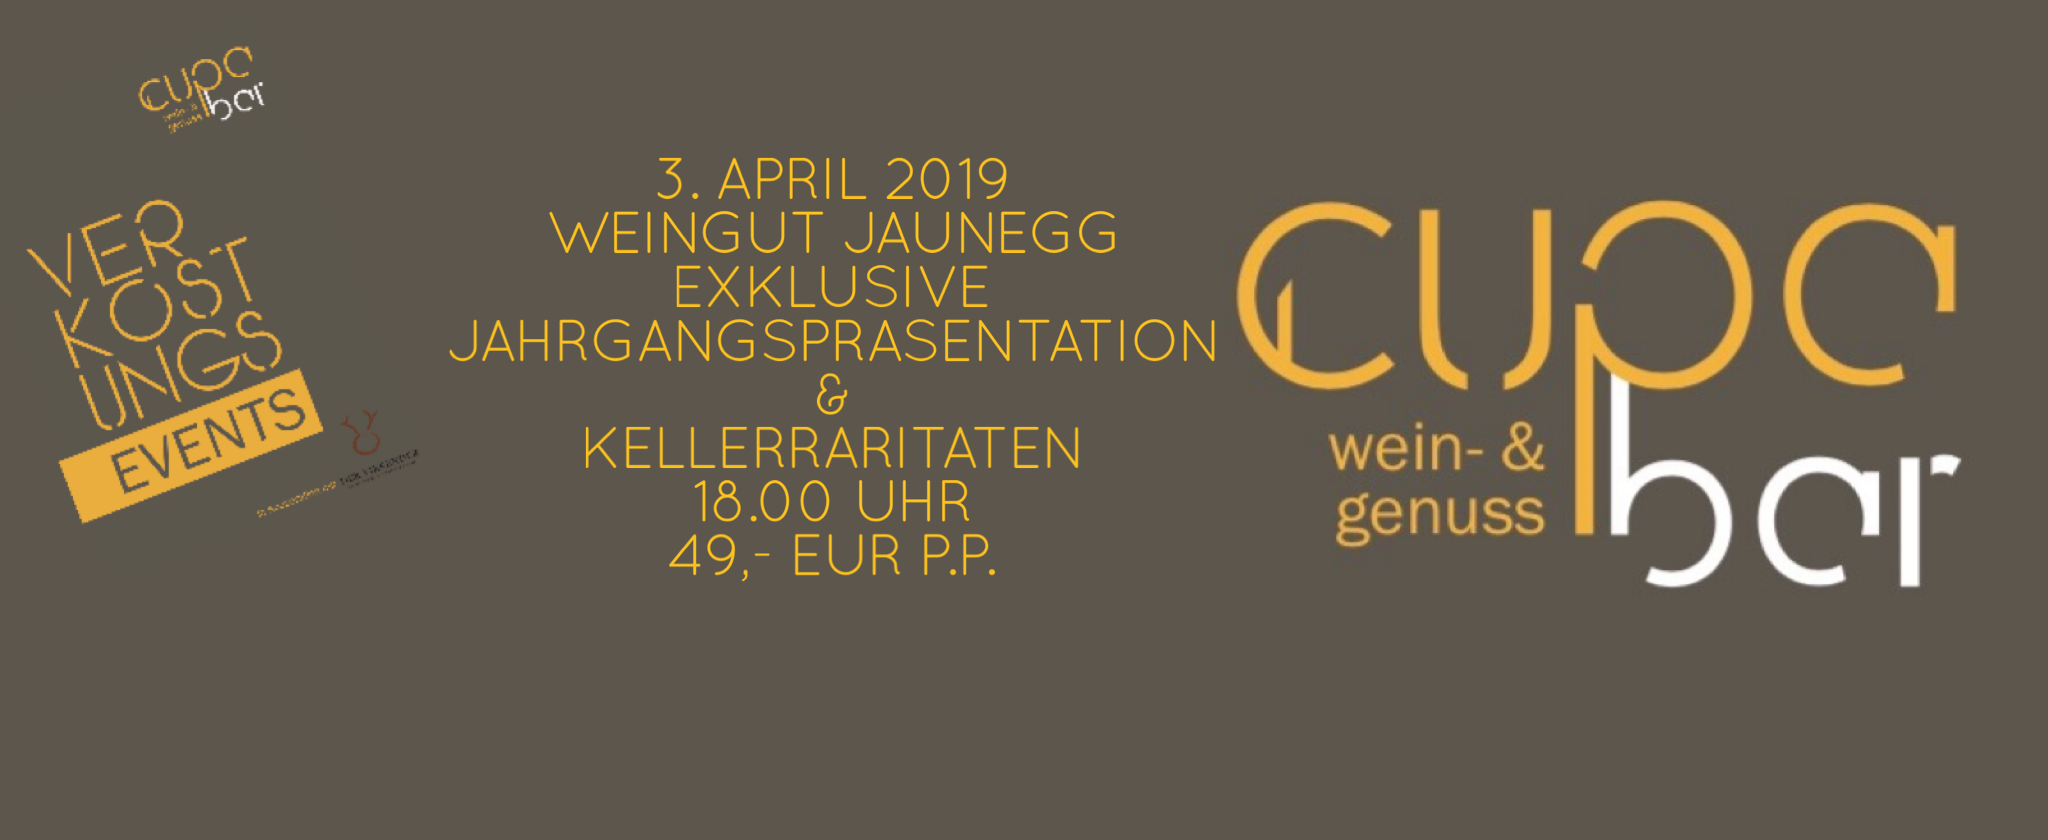 Verkostungs Events . Cupa Bar . Weingut Jaunegg . 3. April 2019